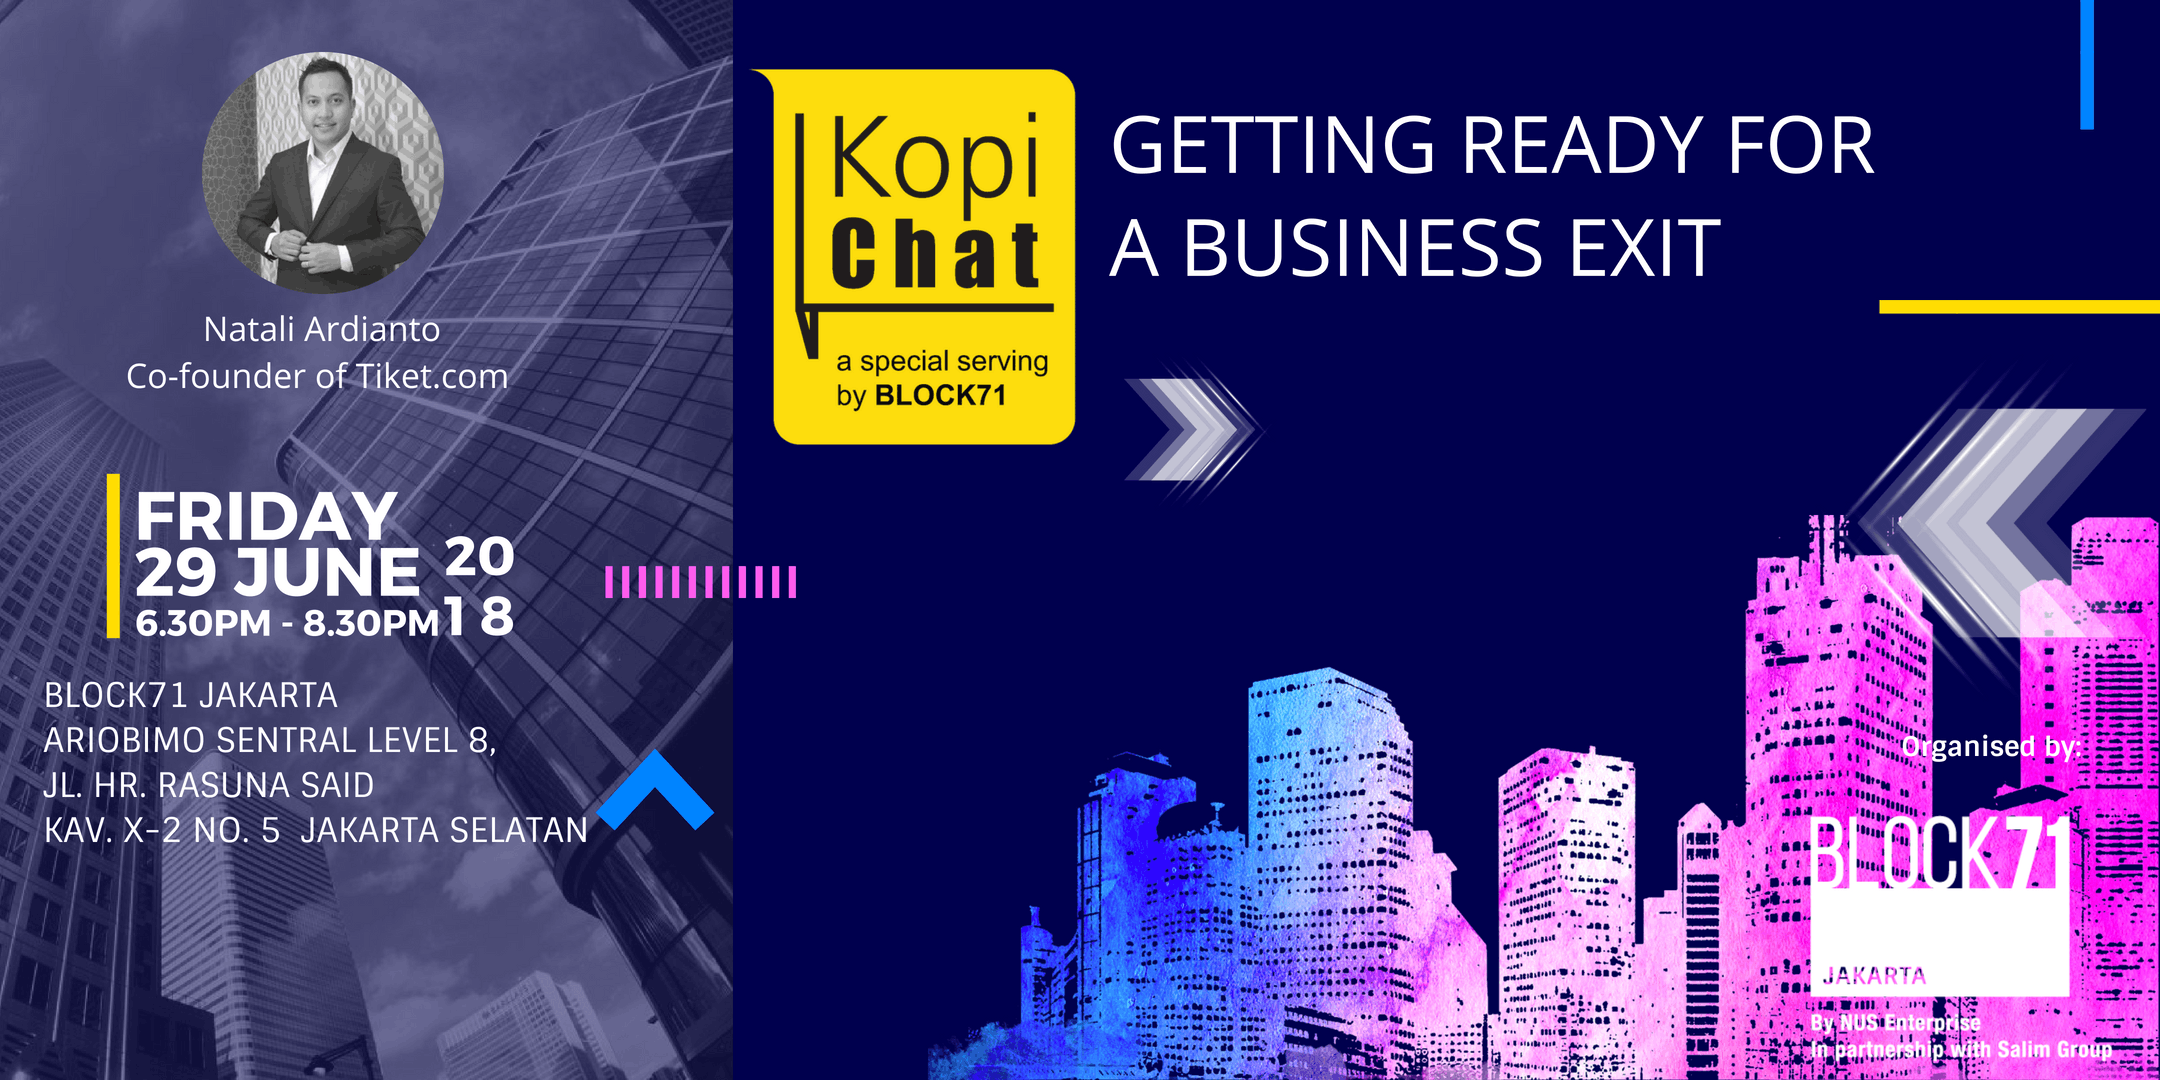 Kopi chat Getting Ready For A Business Exit